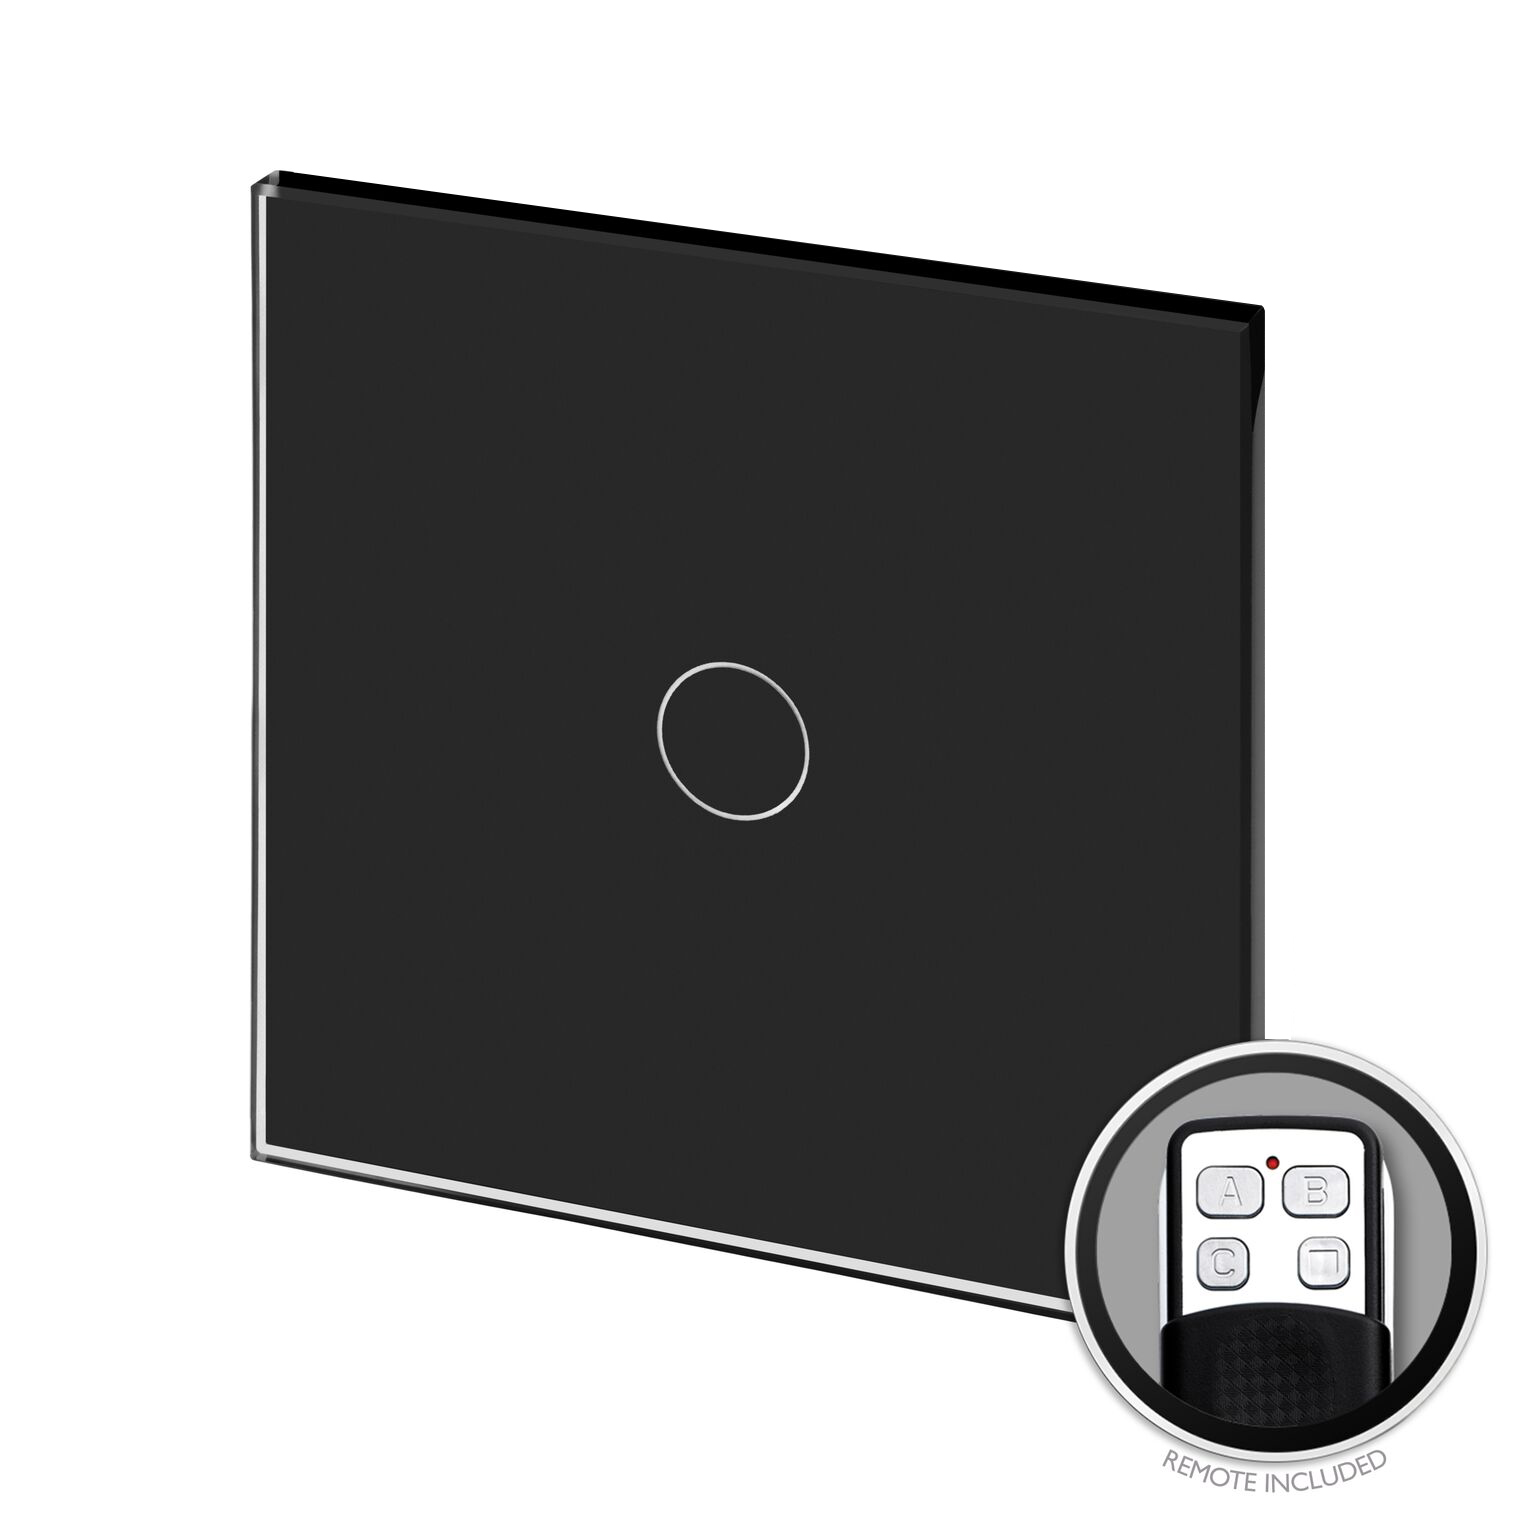 Crystal PG Touch & Remote Light Switch 1 Gang Black